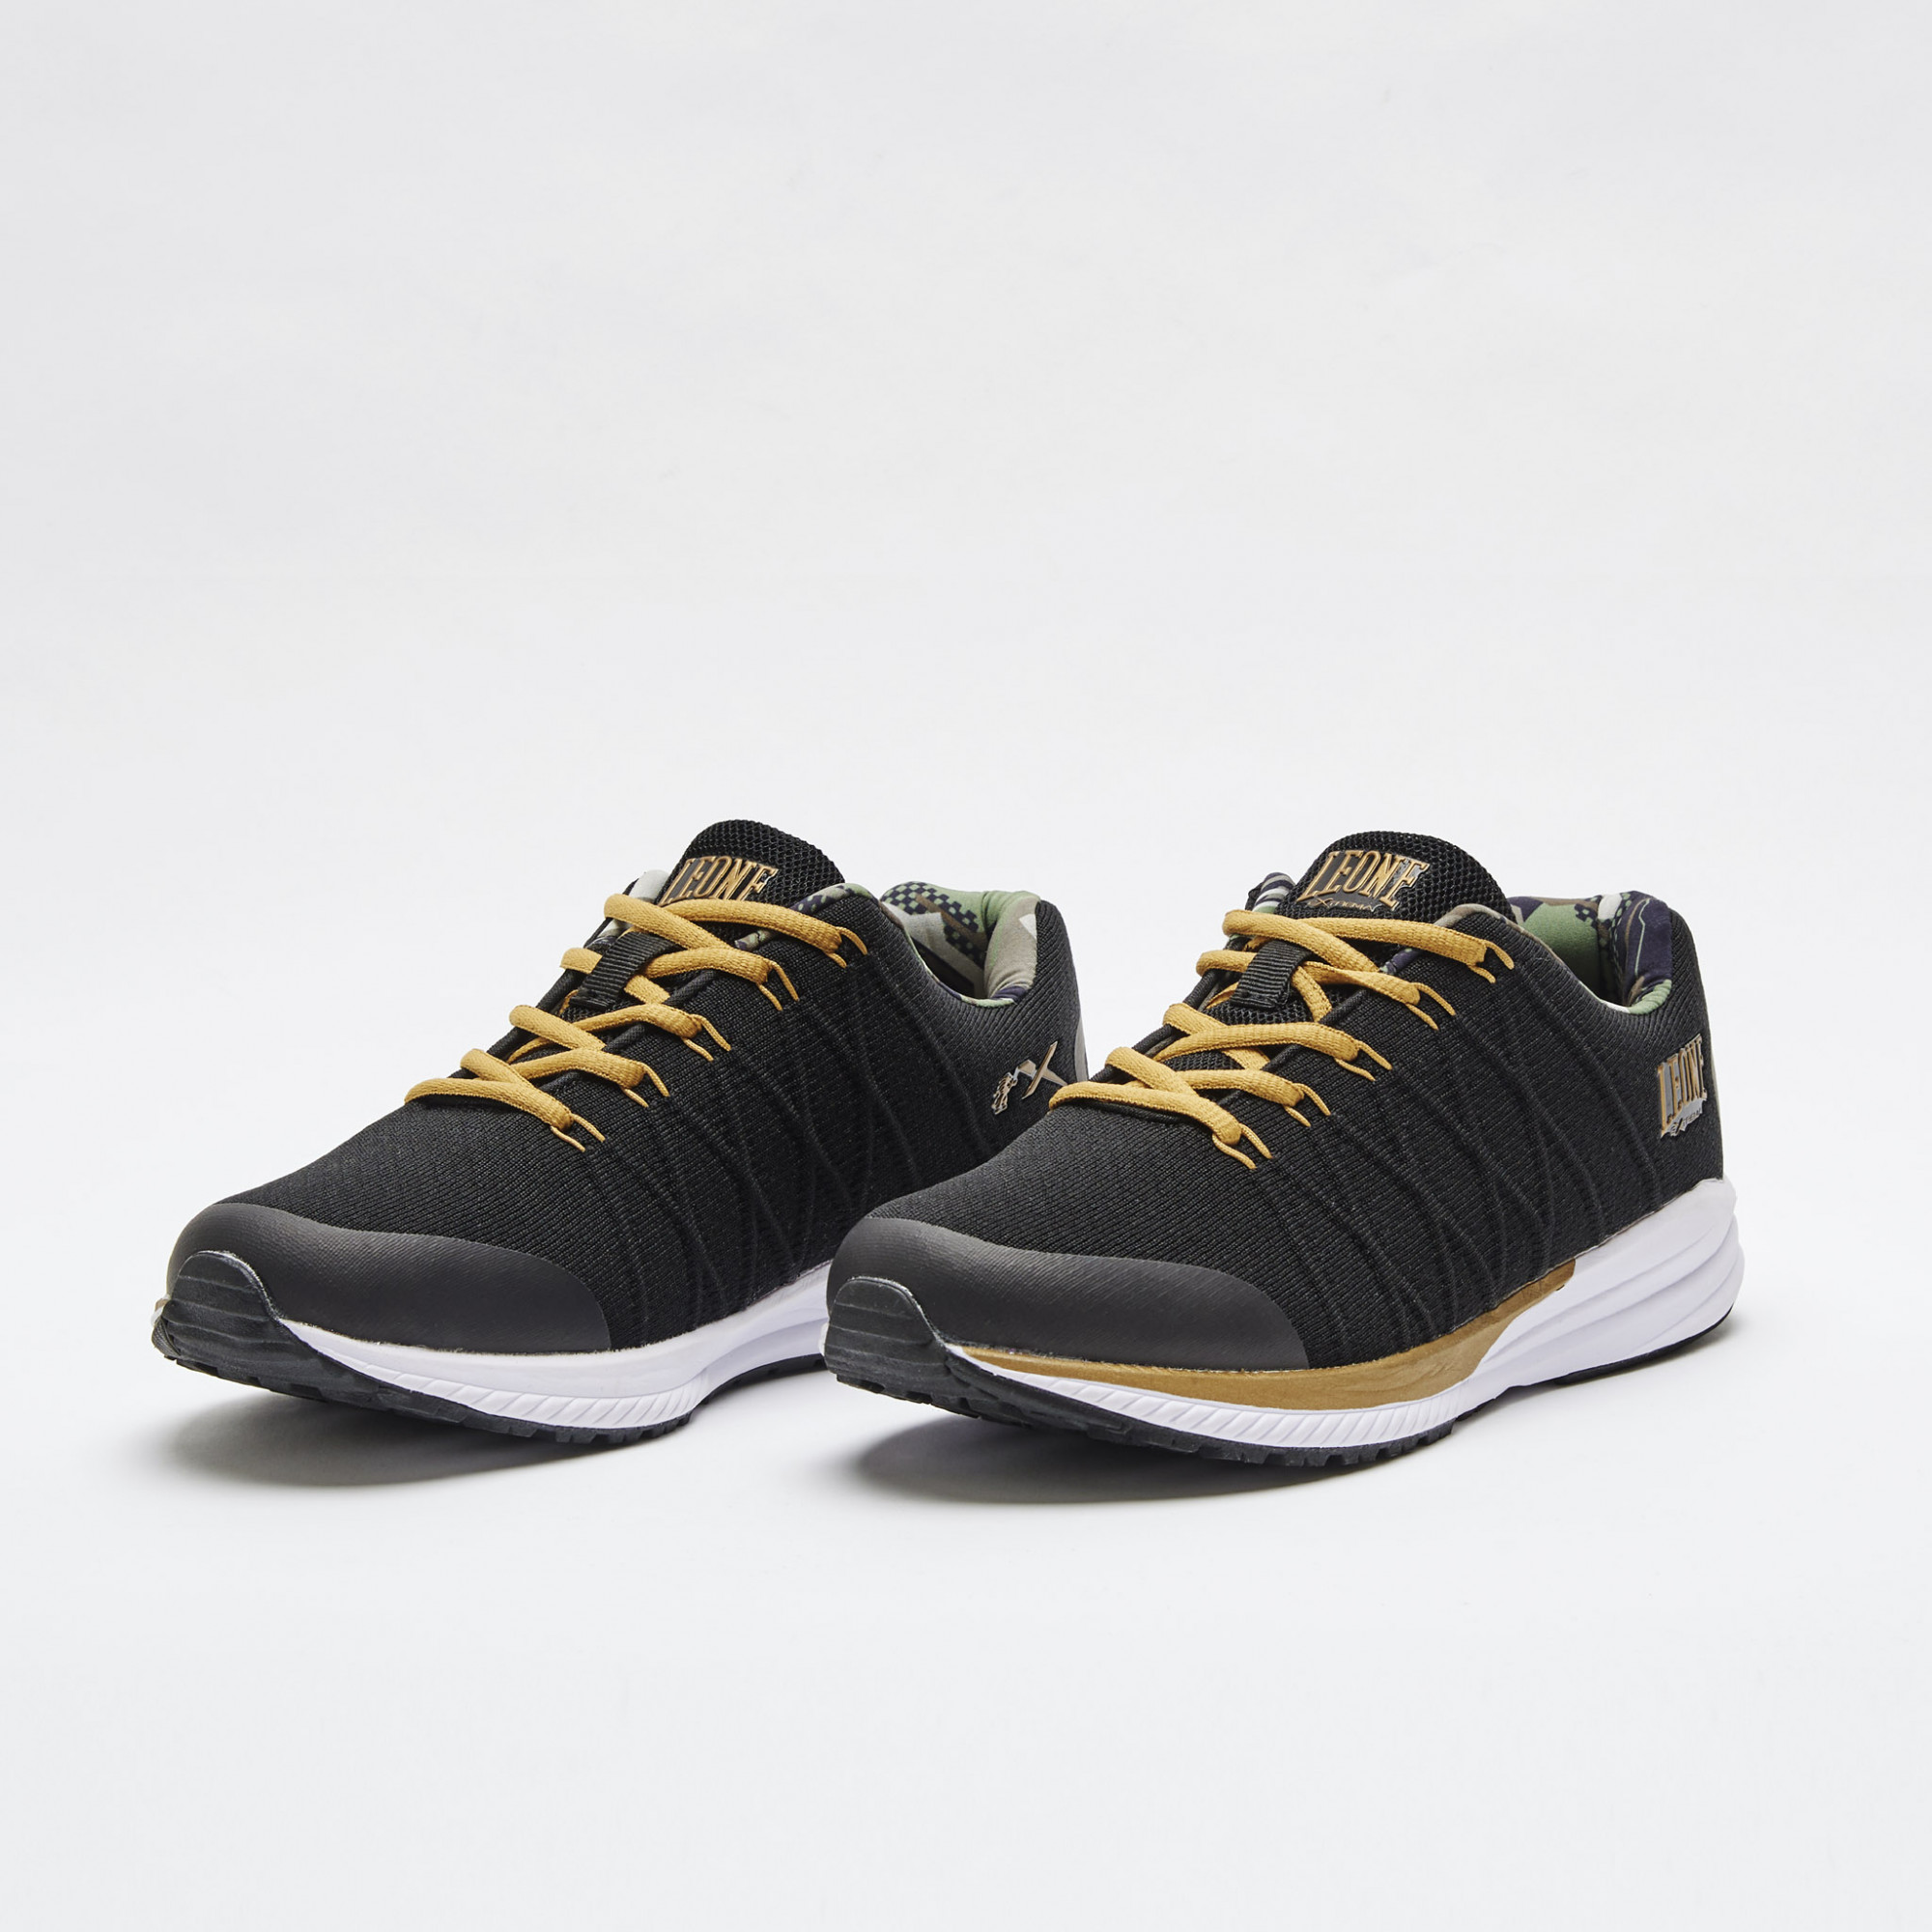 NEO CAMO TRANING SHOES CL120 | Leone